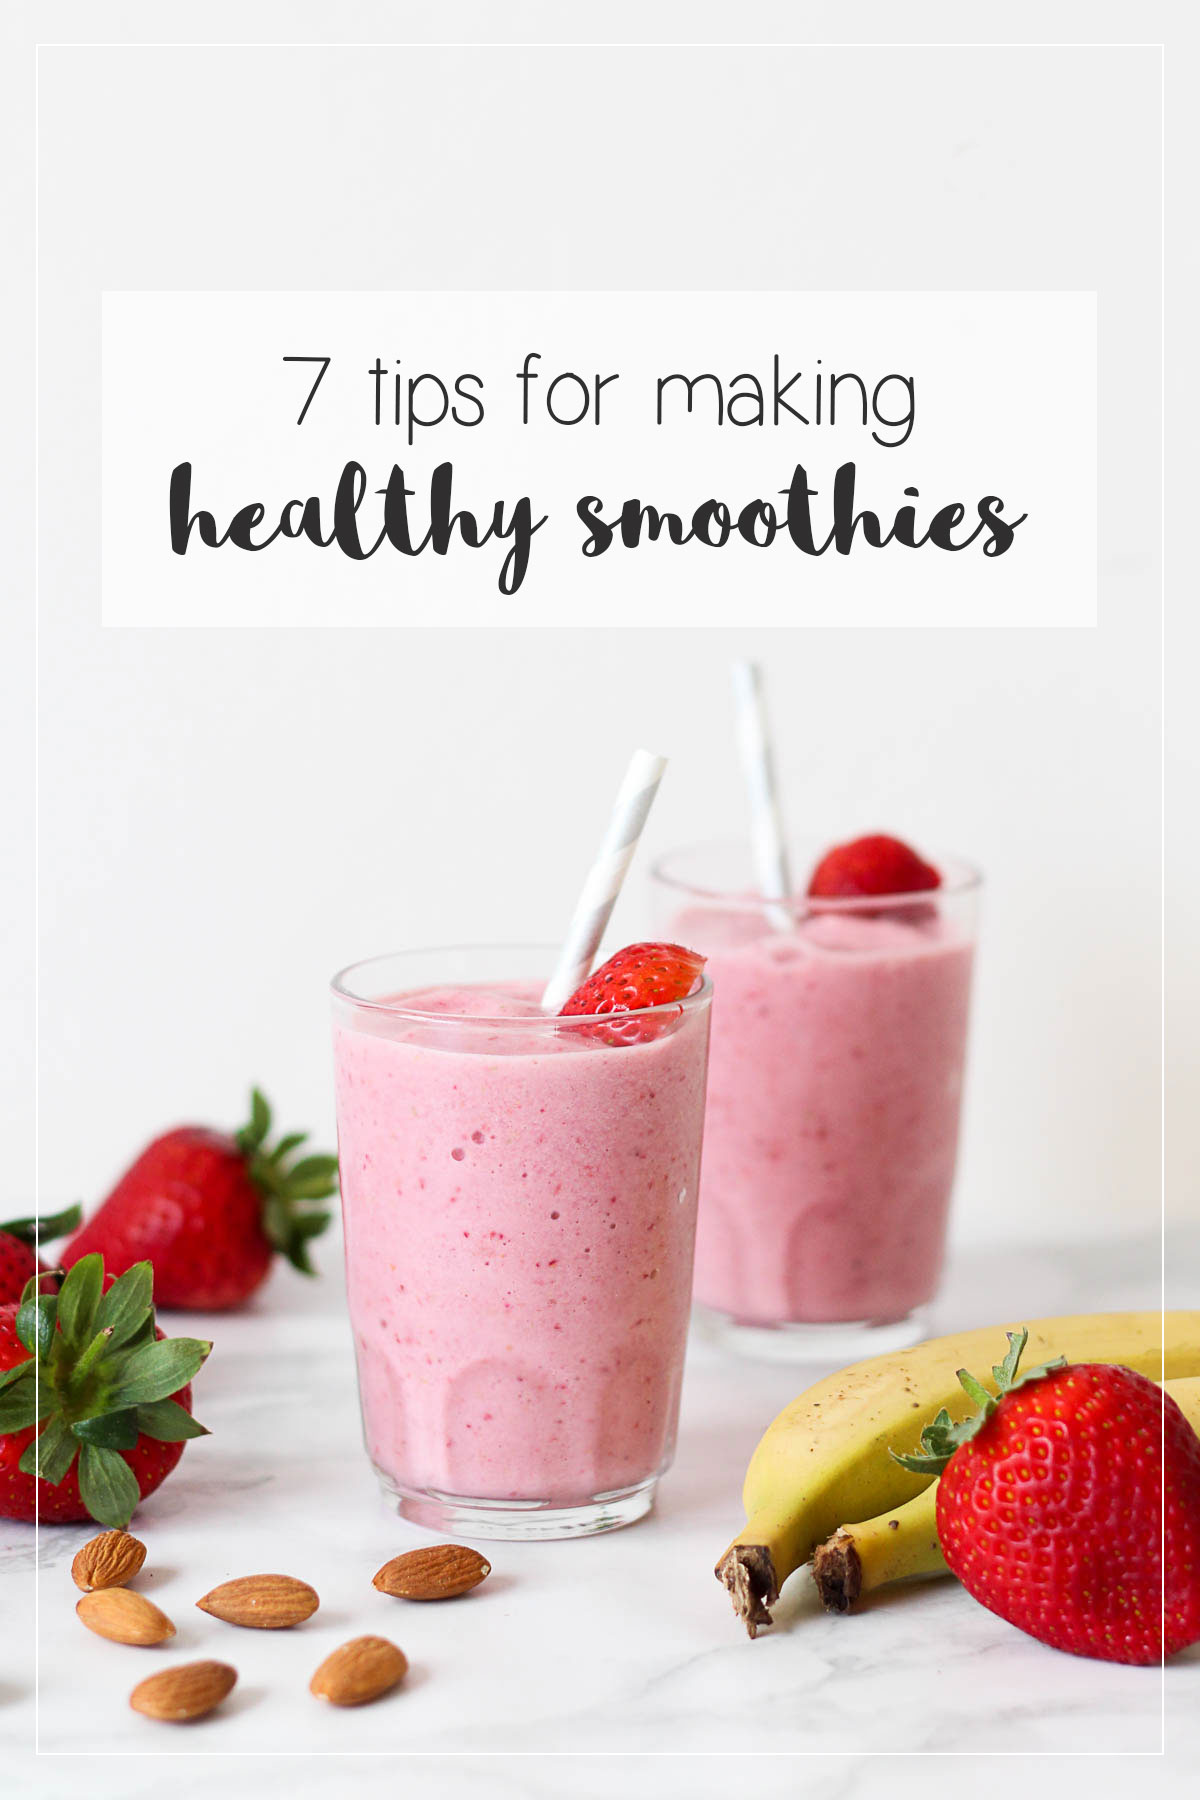 Making healthy smoothies? // 7 tips to make sure